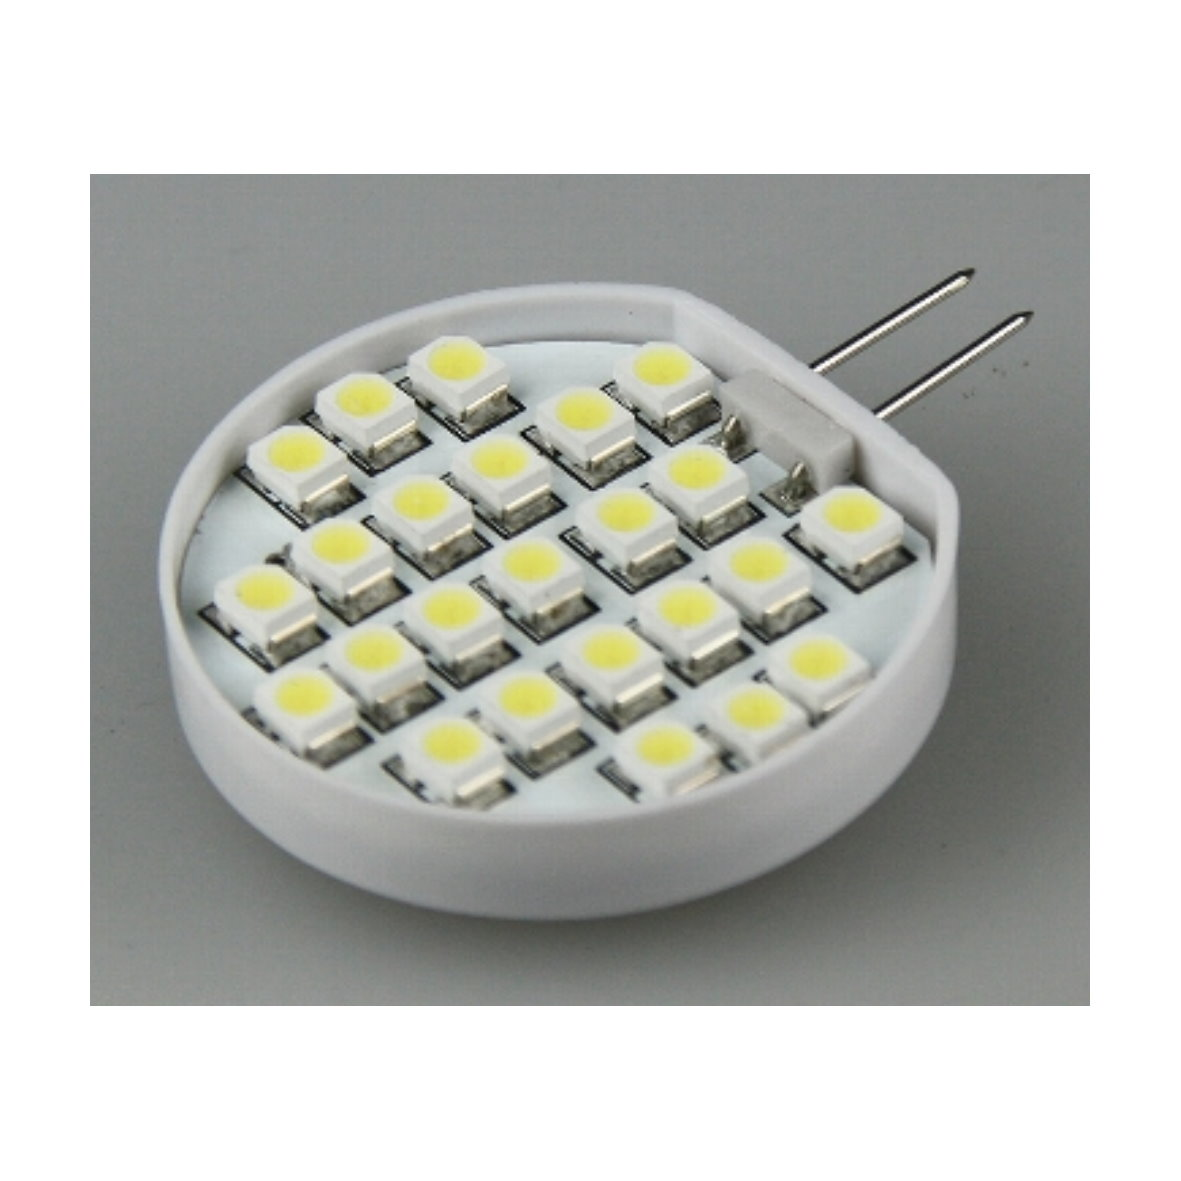 led smd cob cree g4 stift sockel 12v stiftsockel birne licht leuchtmittel lampe ebay. Black Bedroom Furniture Sets. Home Design Ideas